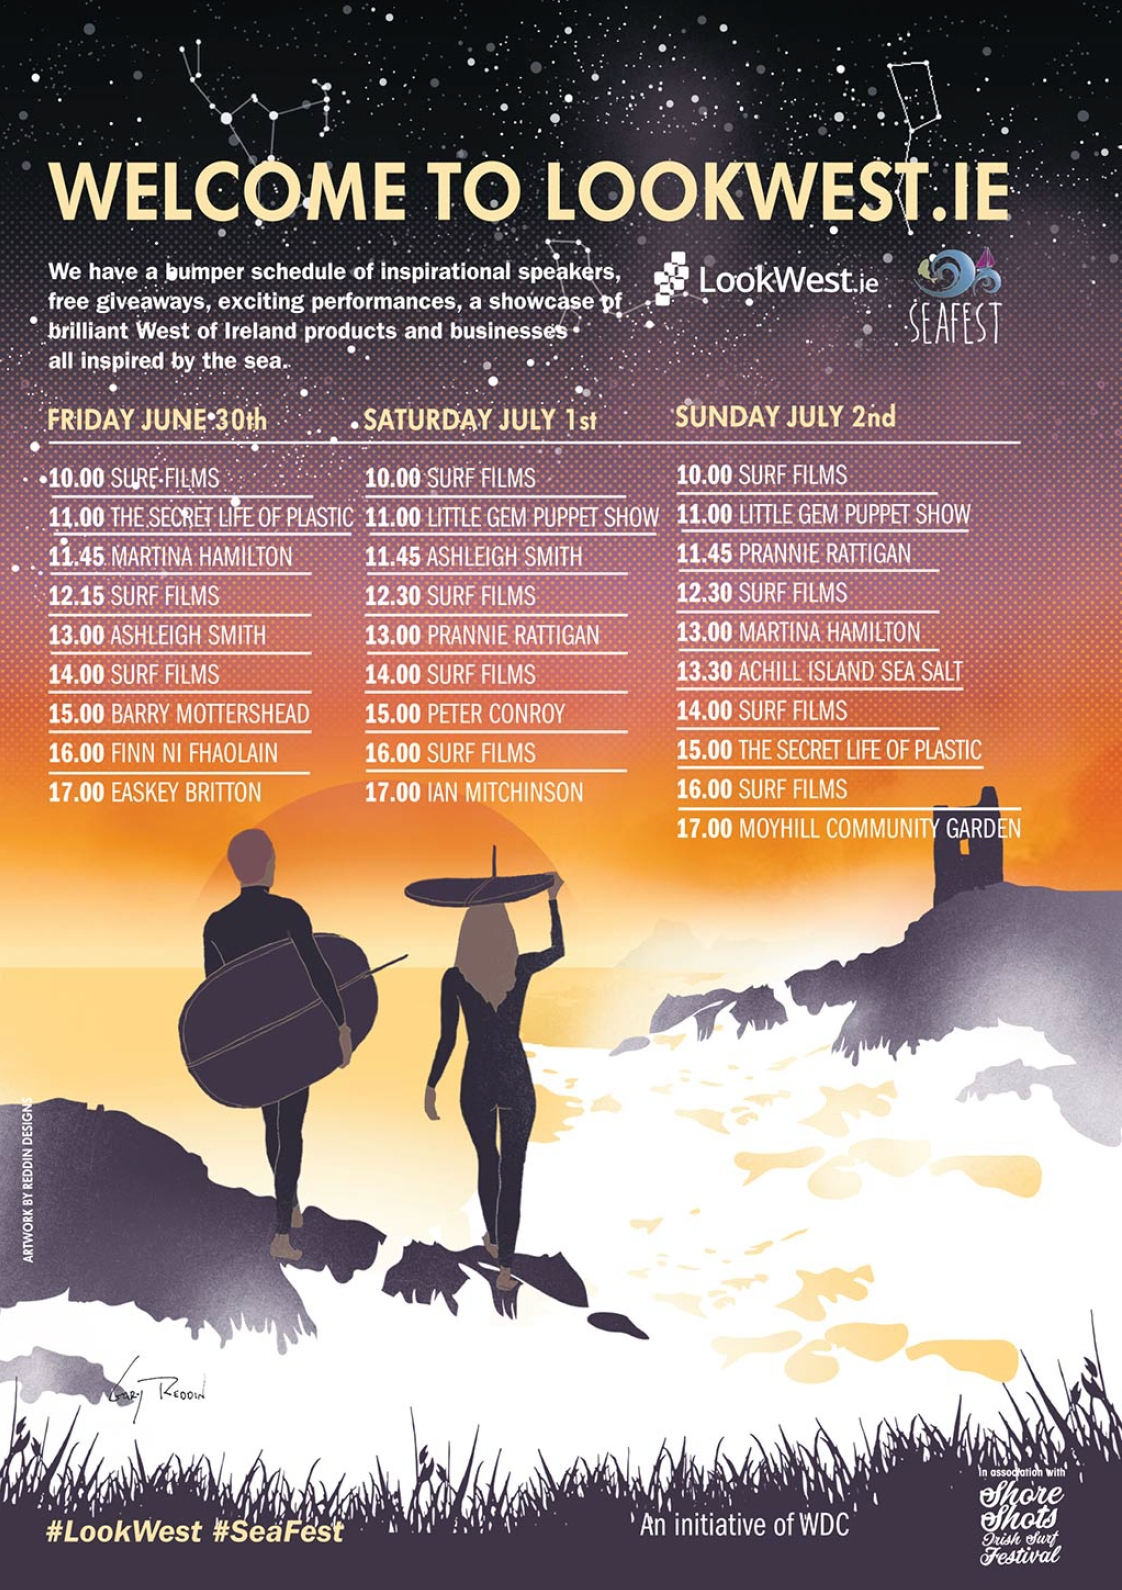 Look West schedule of events for Seafest 2017 in Galway.